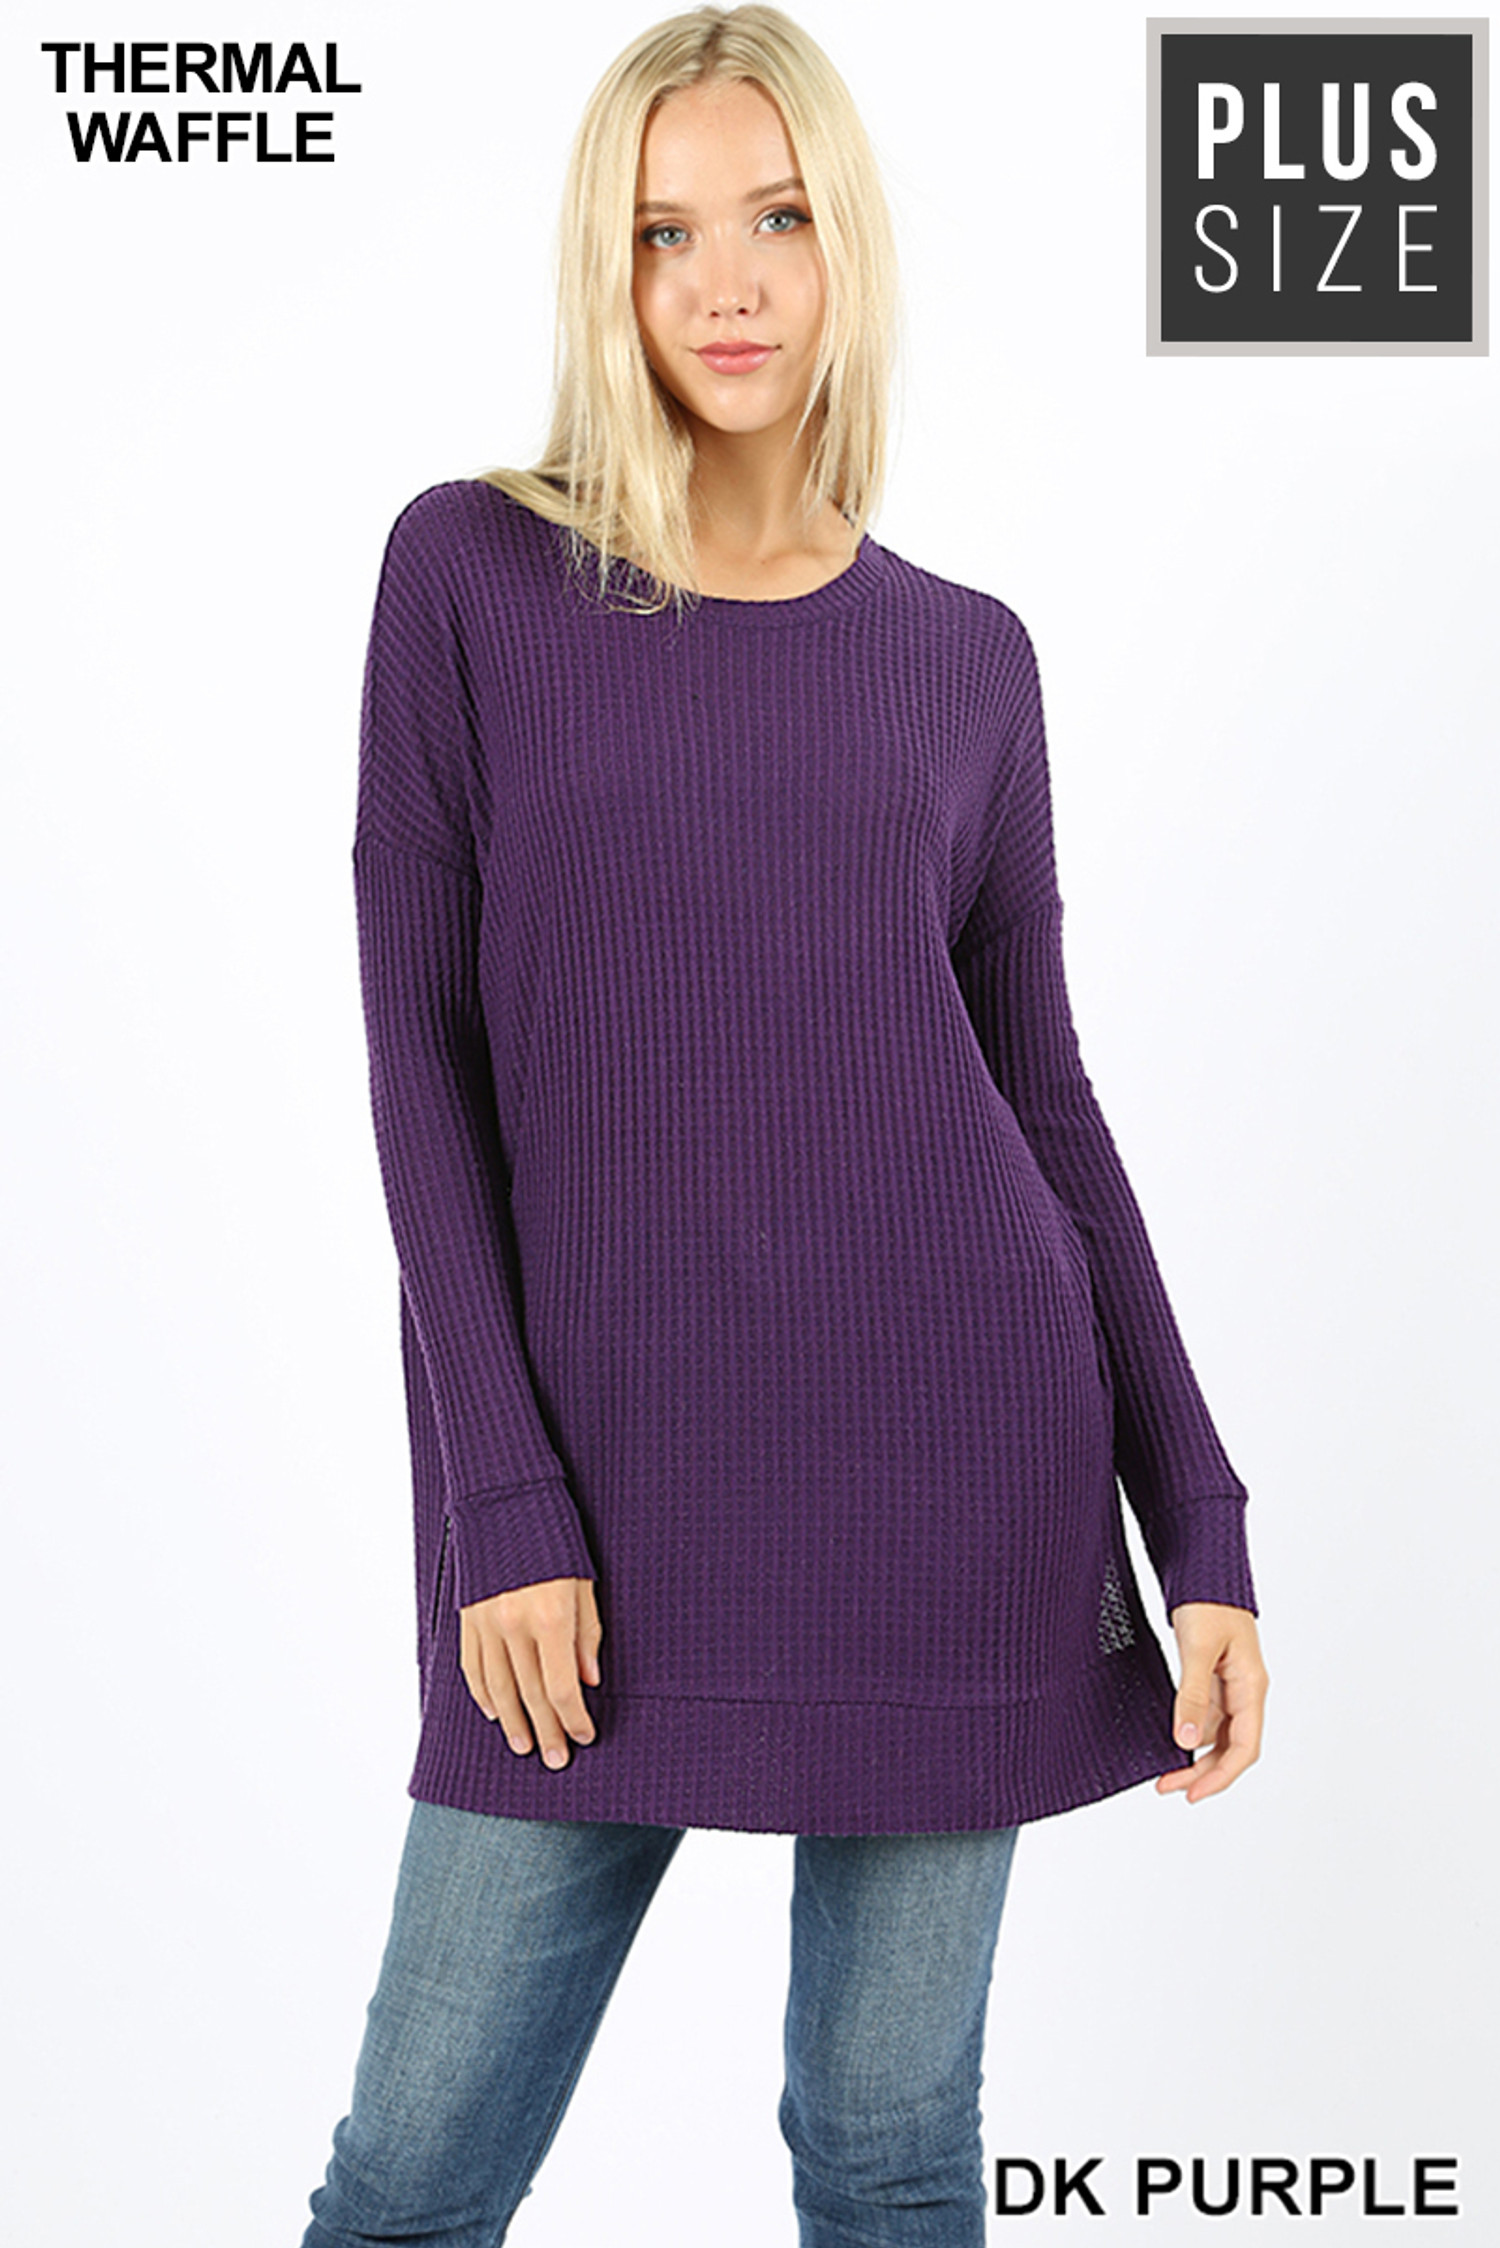 Front image of Dk Purple Brushed Thermal Waffle Knit Round Neck Plus Size Sweater